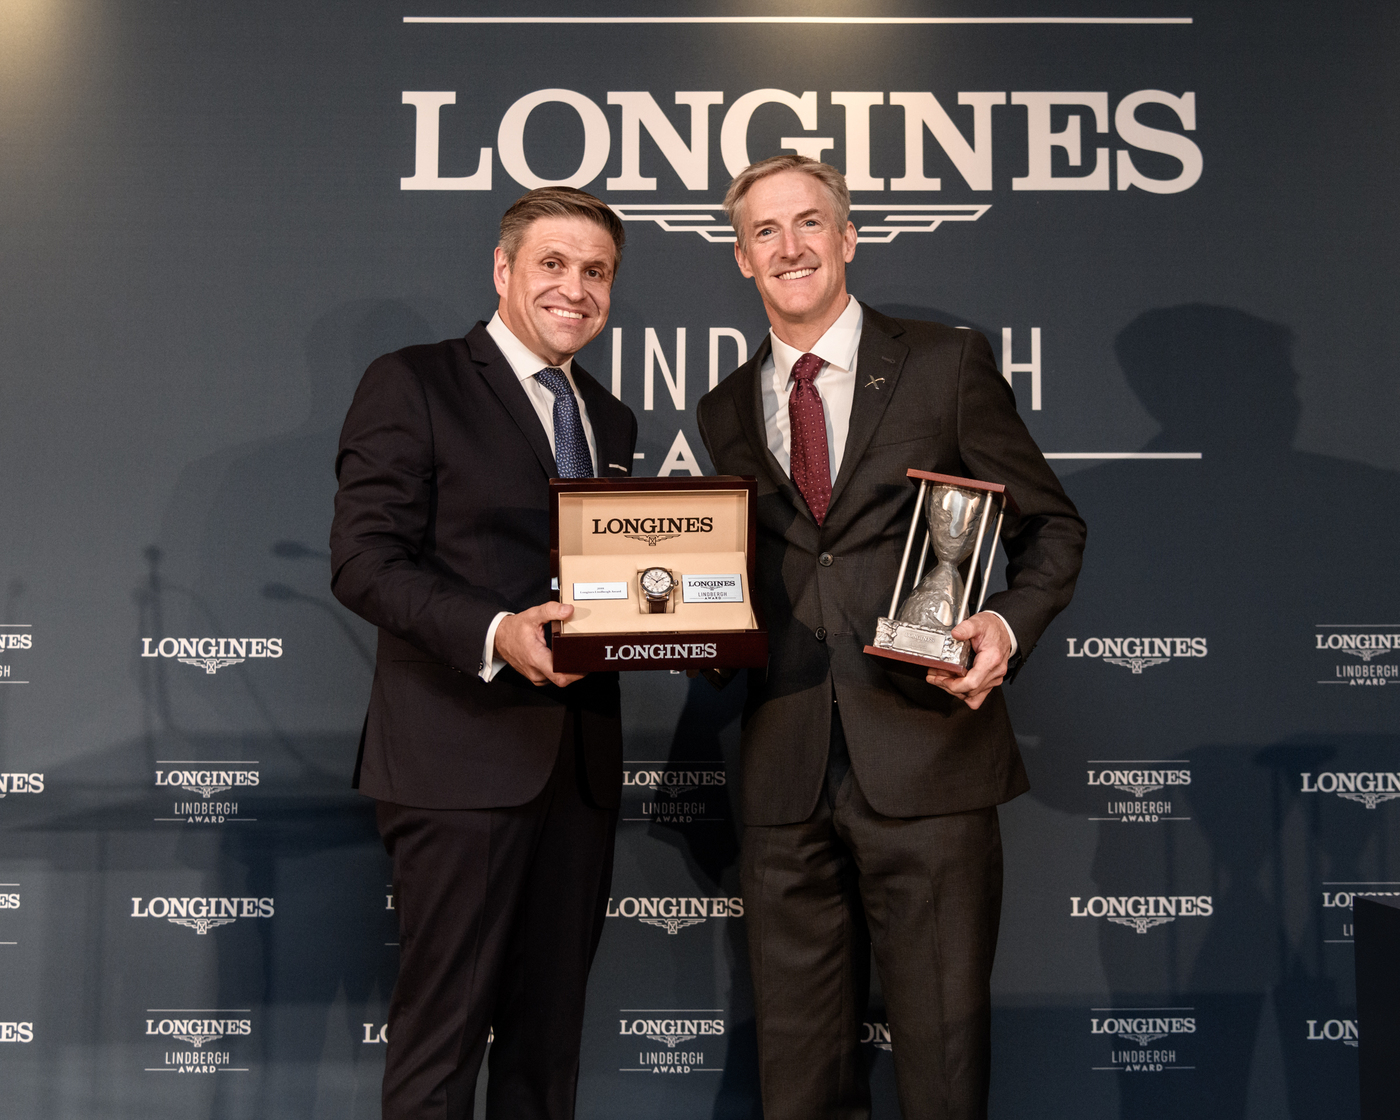 Longines Corporate Event: Erik Lindbergh, Grandson of Famed Aviator Charles Lindbergh, Receives the First Longines Lindbergh Award 4